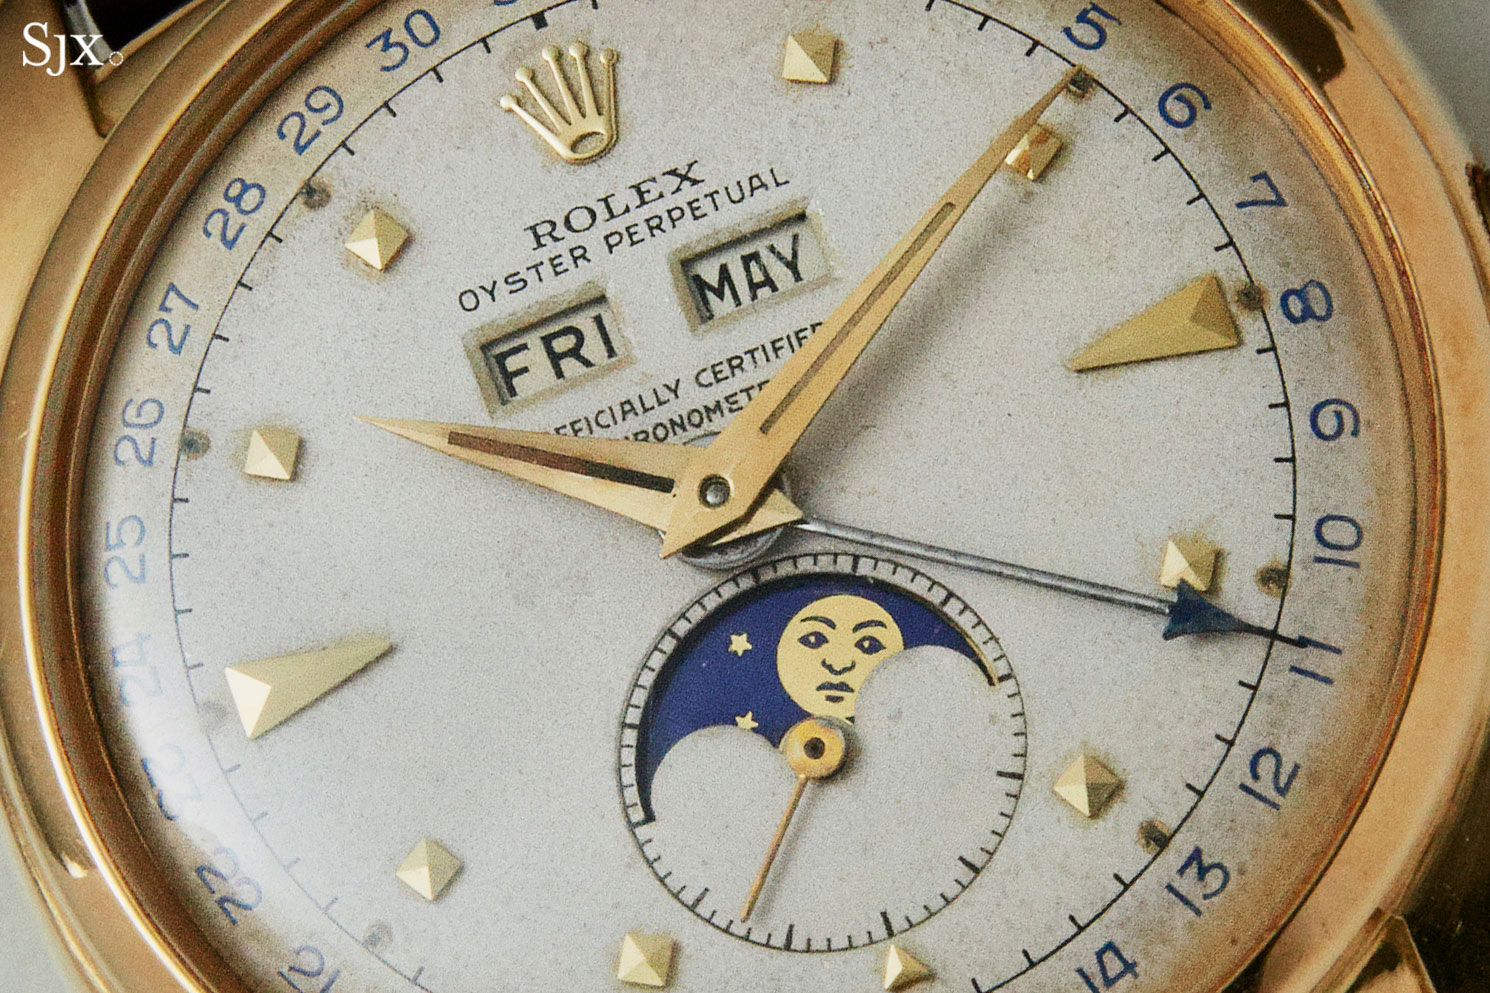 Rolex 6062 pyramid christies 1